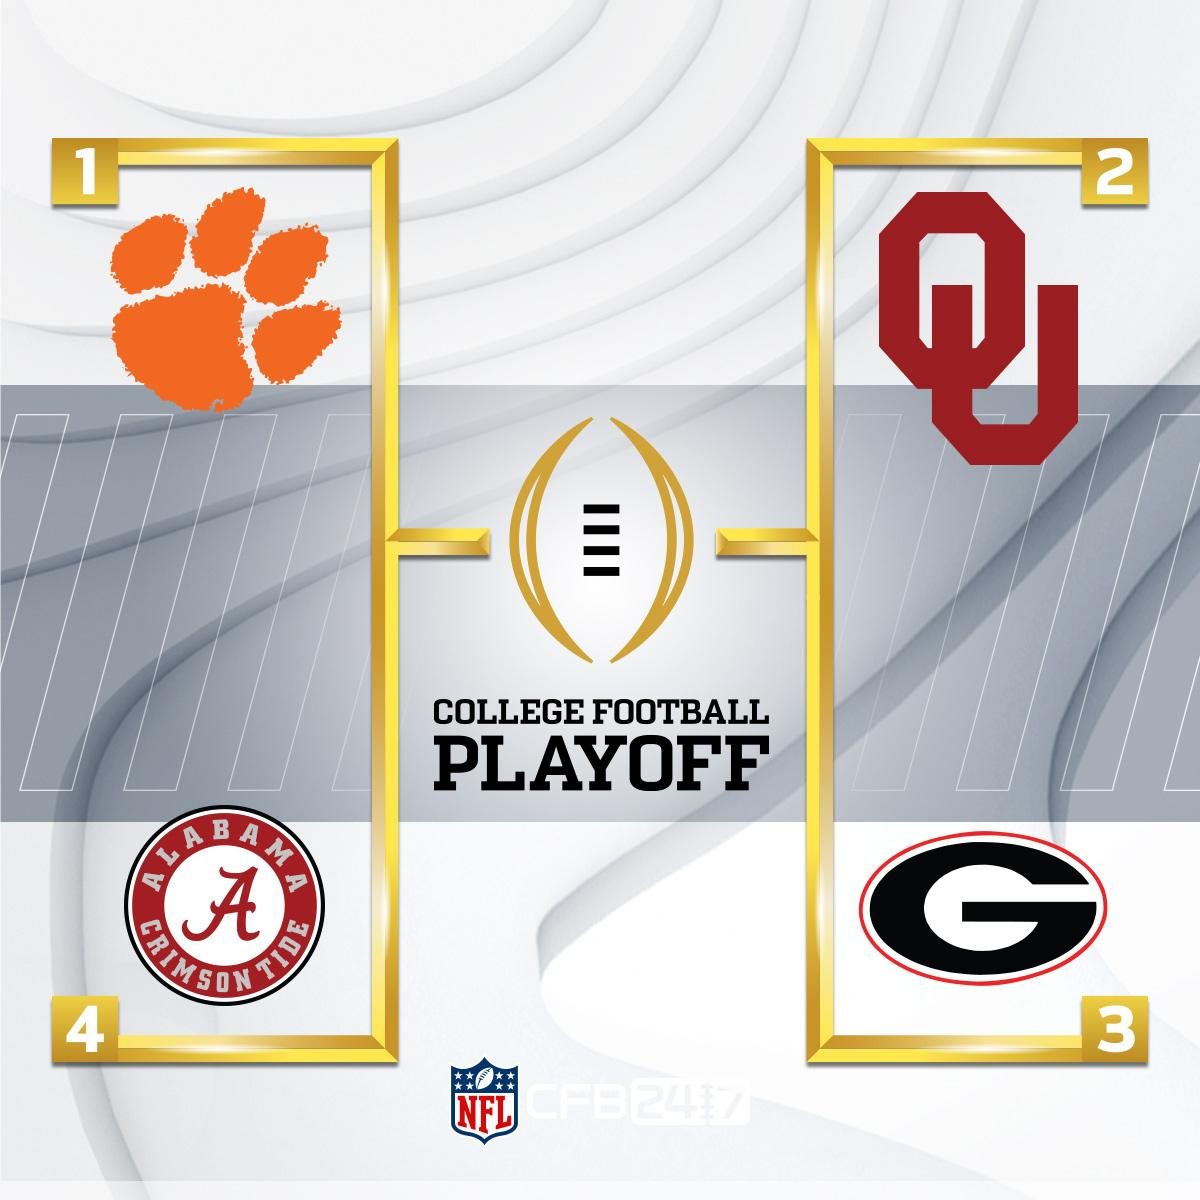 FINAL #CFBPlayoff rankings:  1. @ClemsonFB  2. @OU_Football  3. @FootballUGA  4. @AlabamaFTBL   5. @OhioStateFB  6. @BadgerFootball